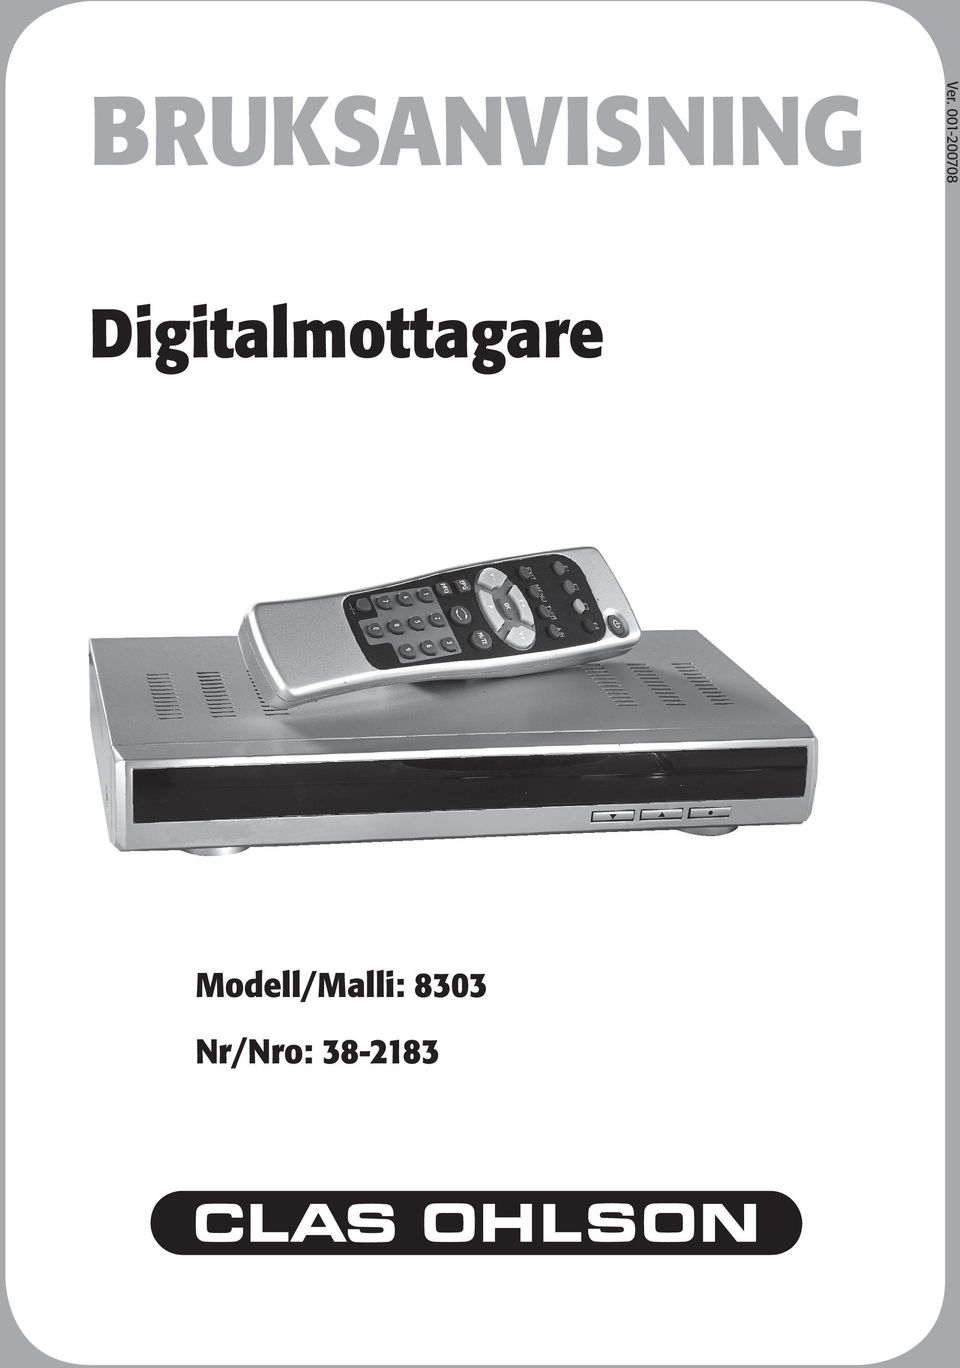 Digitalmottagare